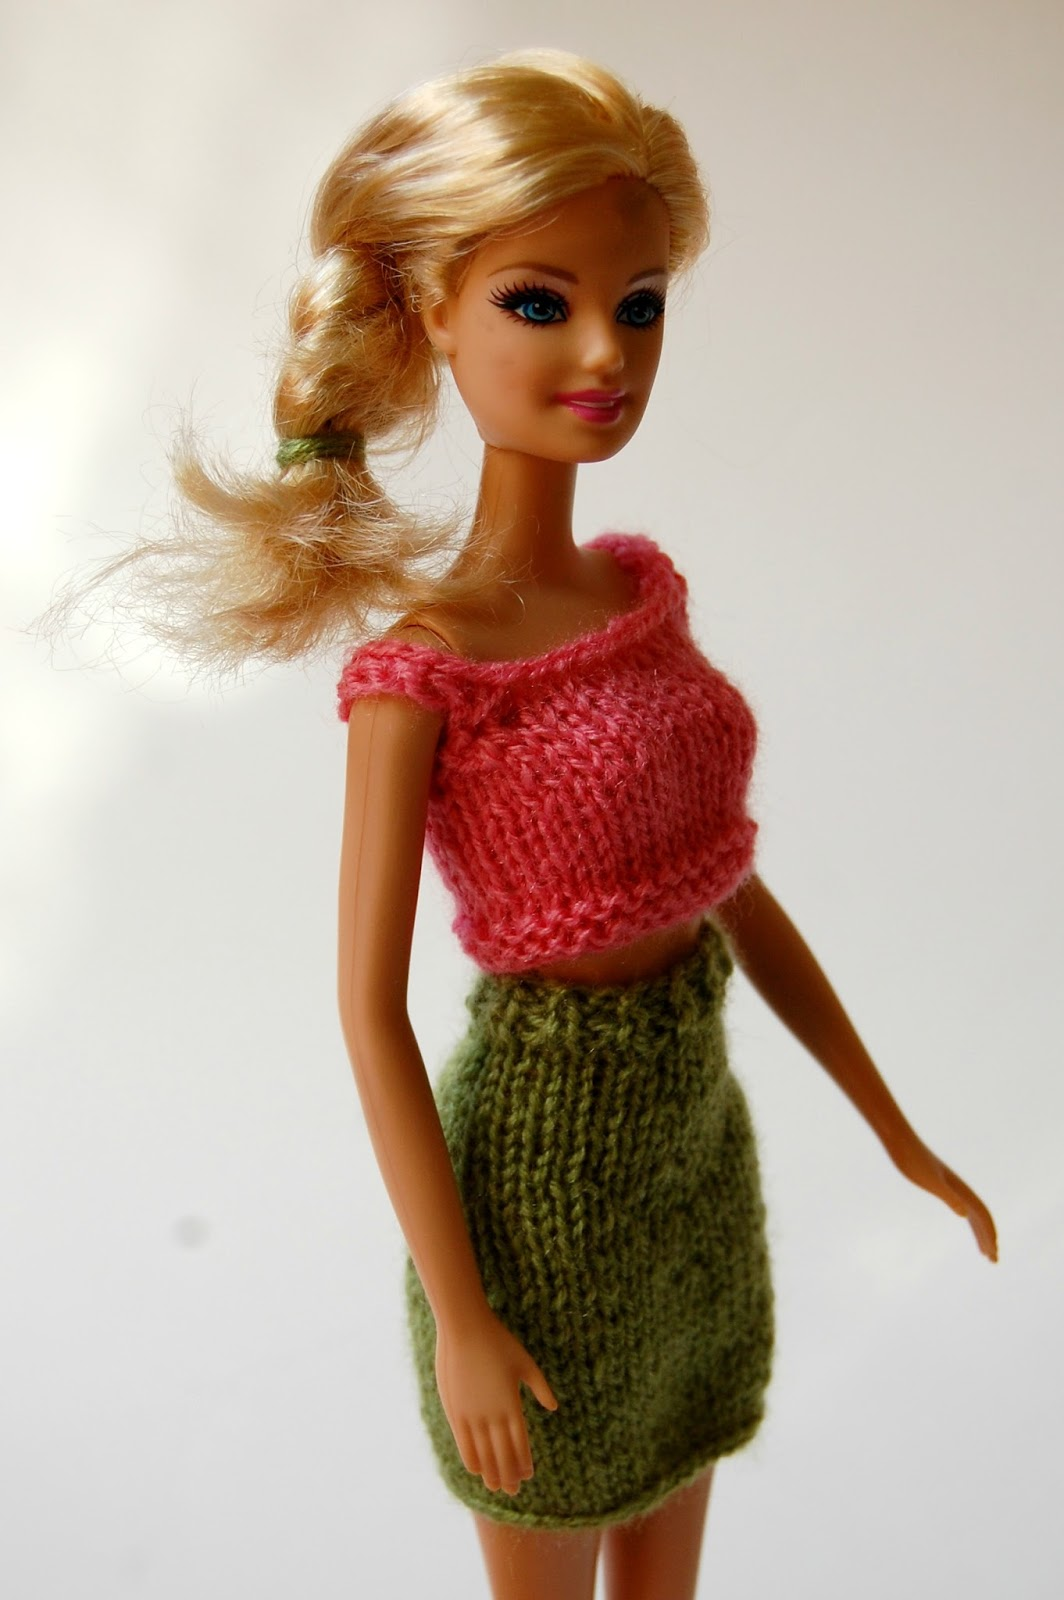 Free Barbie Knitting Patterns : the geeky knitter: barbie pencil skirt - free knitting pattern